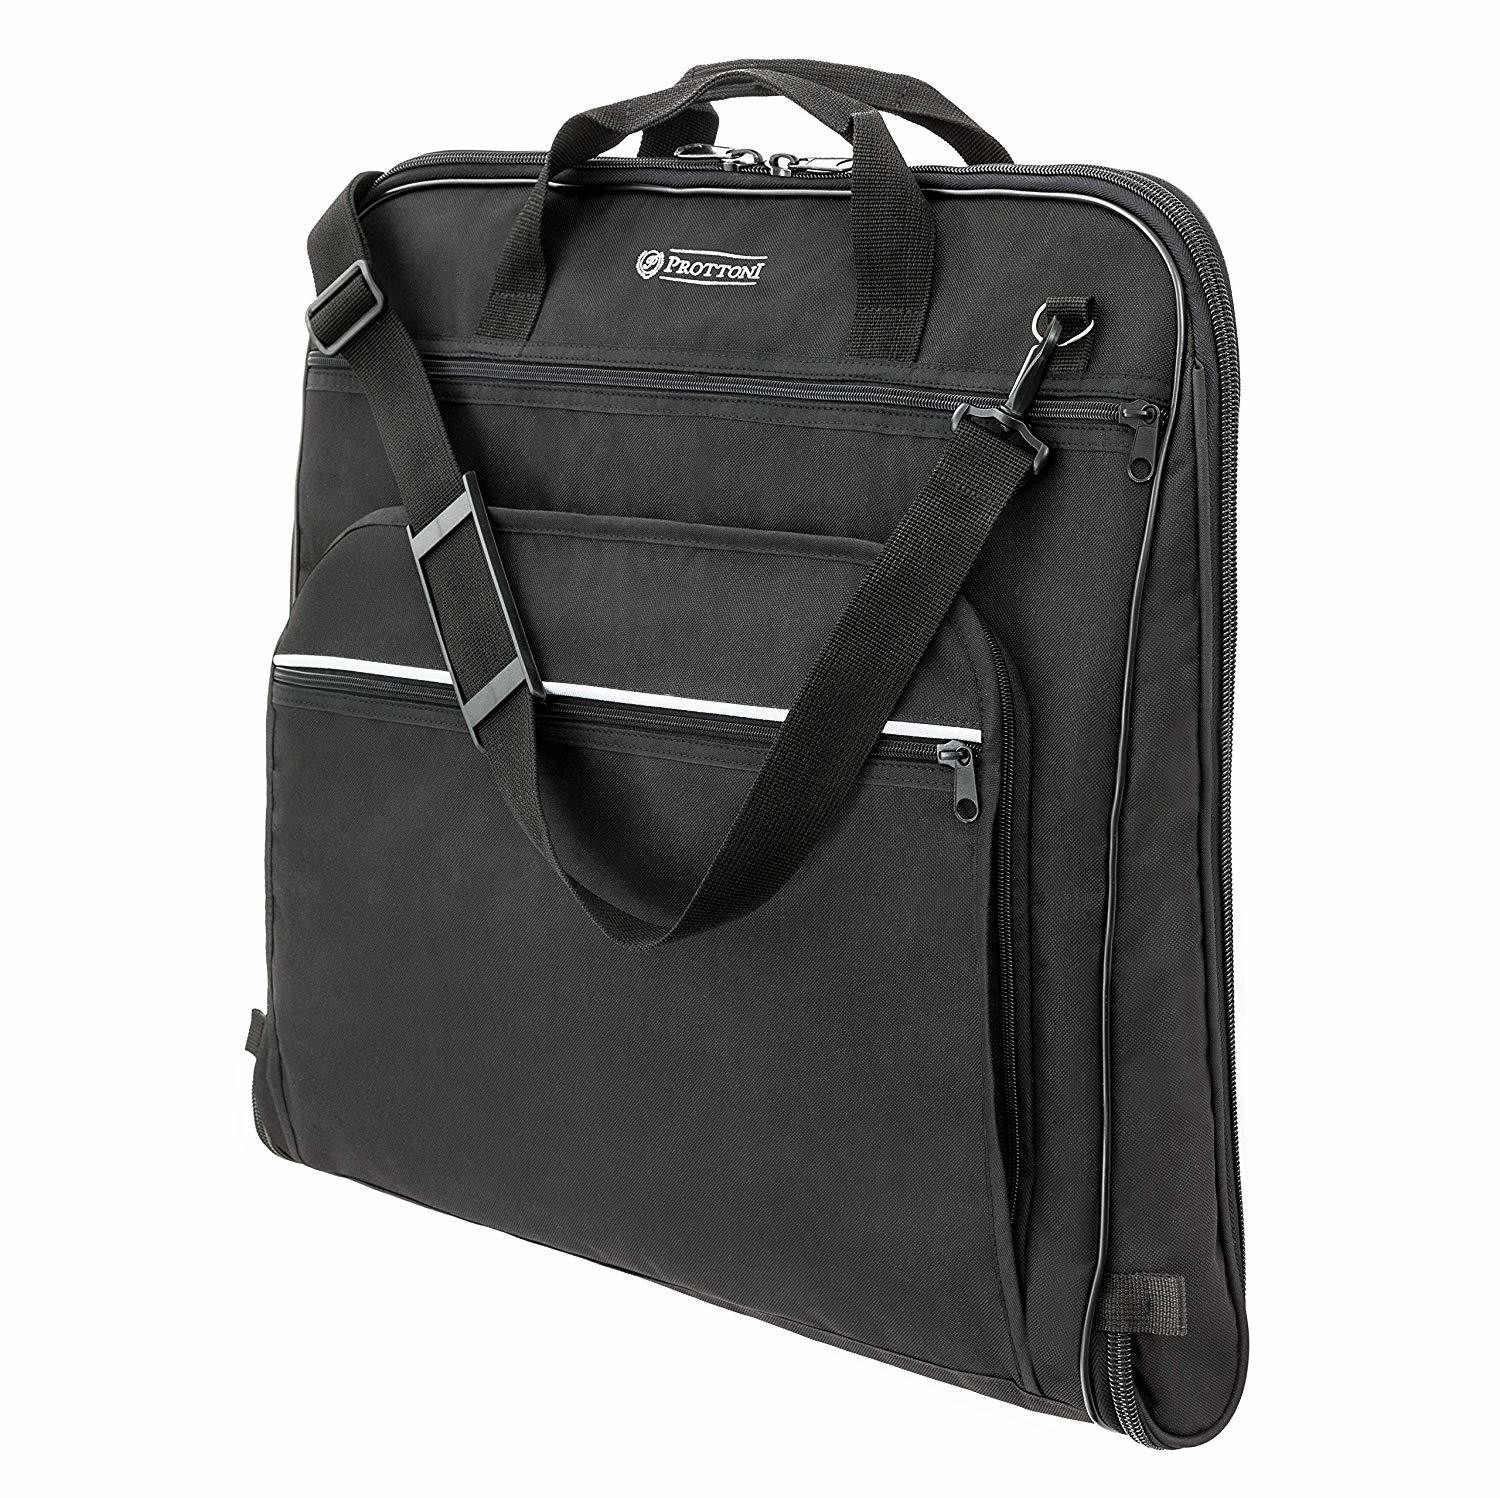 "PROTTONI 44"" Garment Bag with Shoulder Strap"